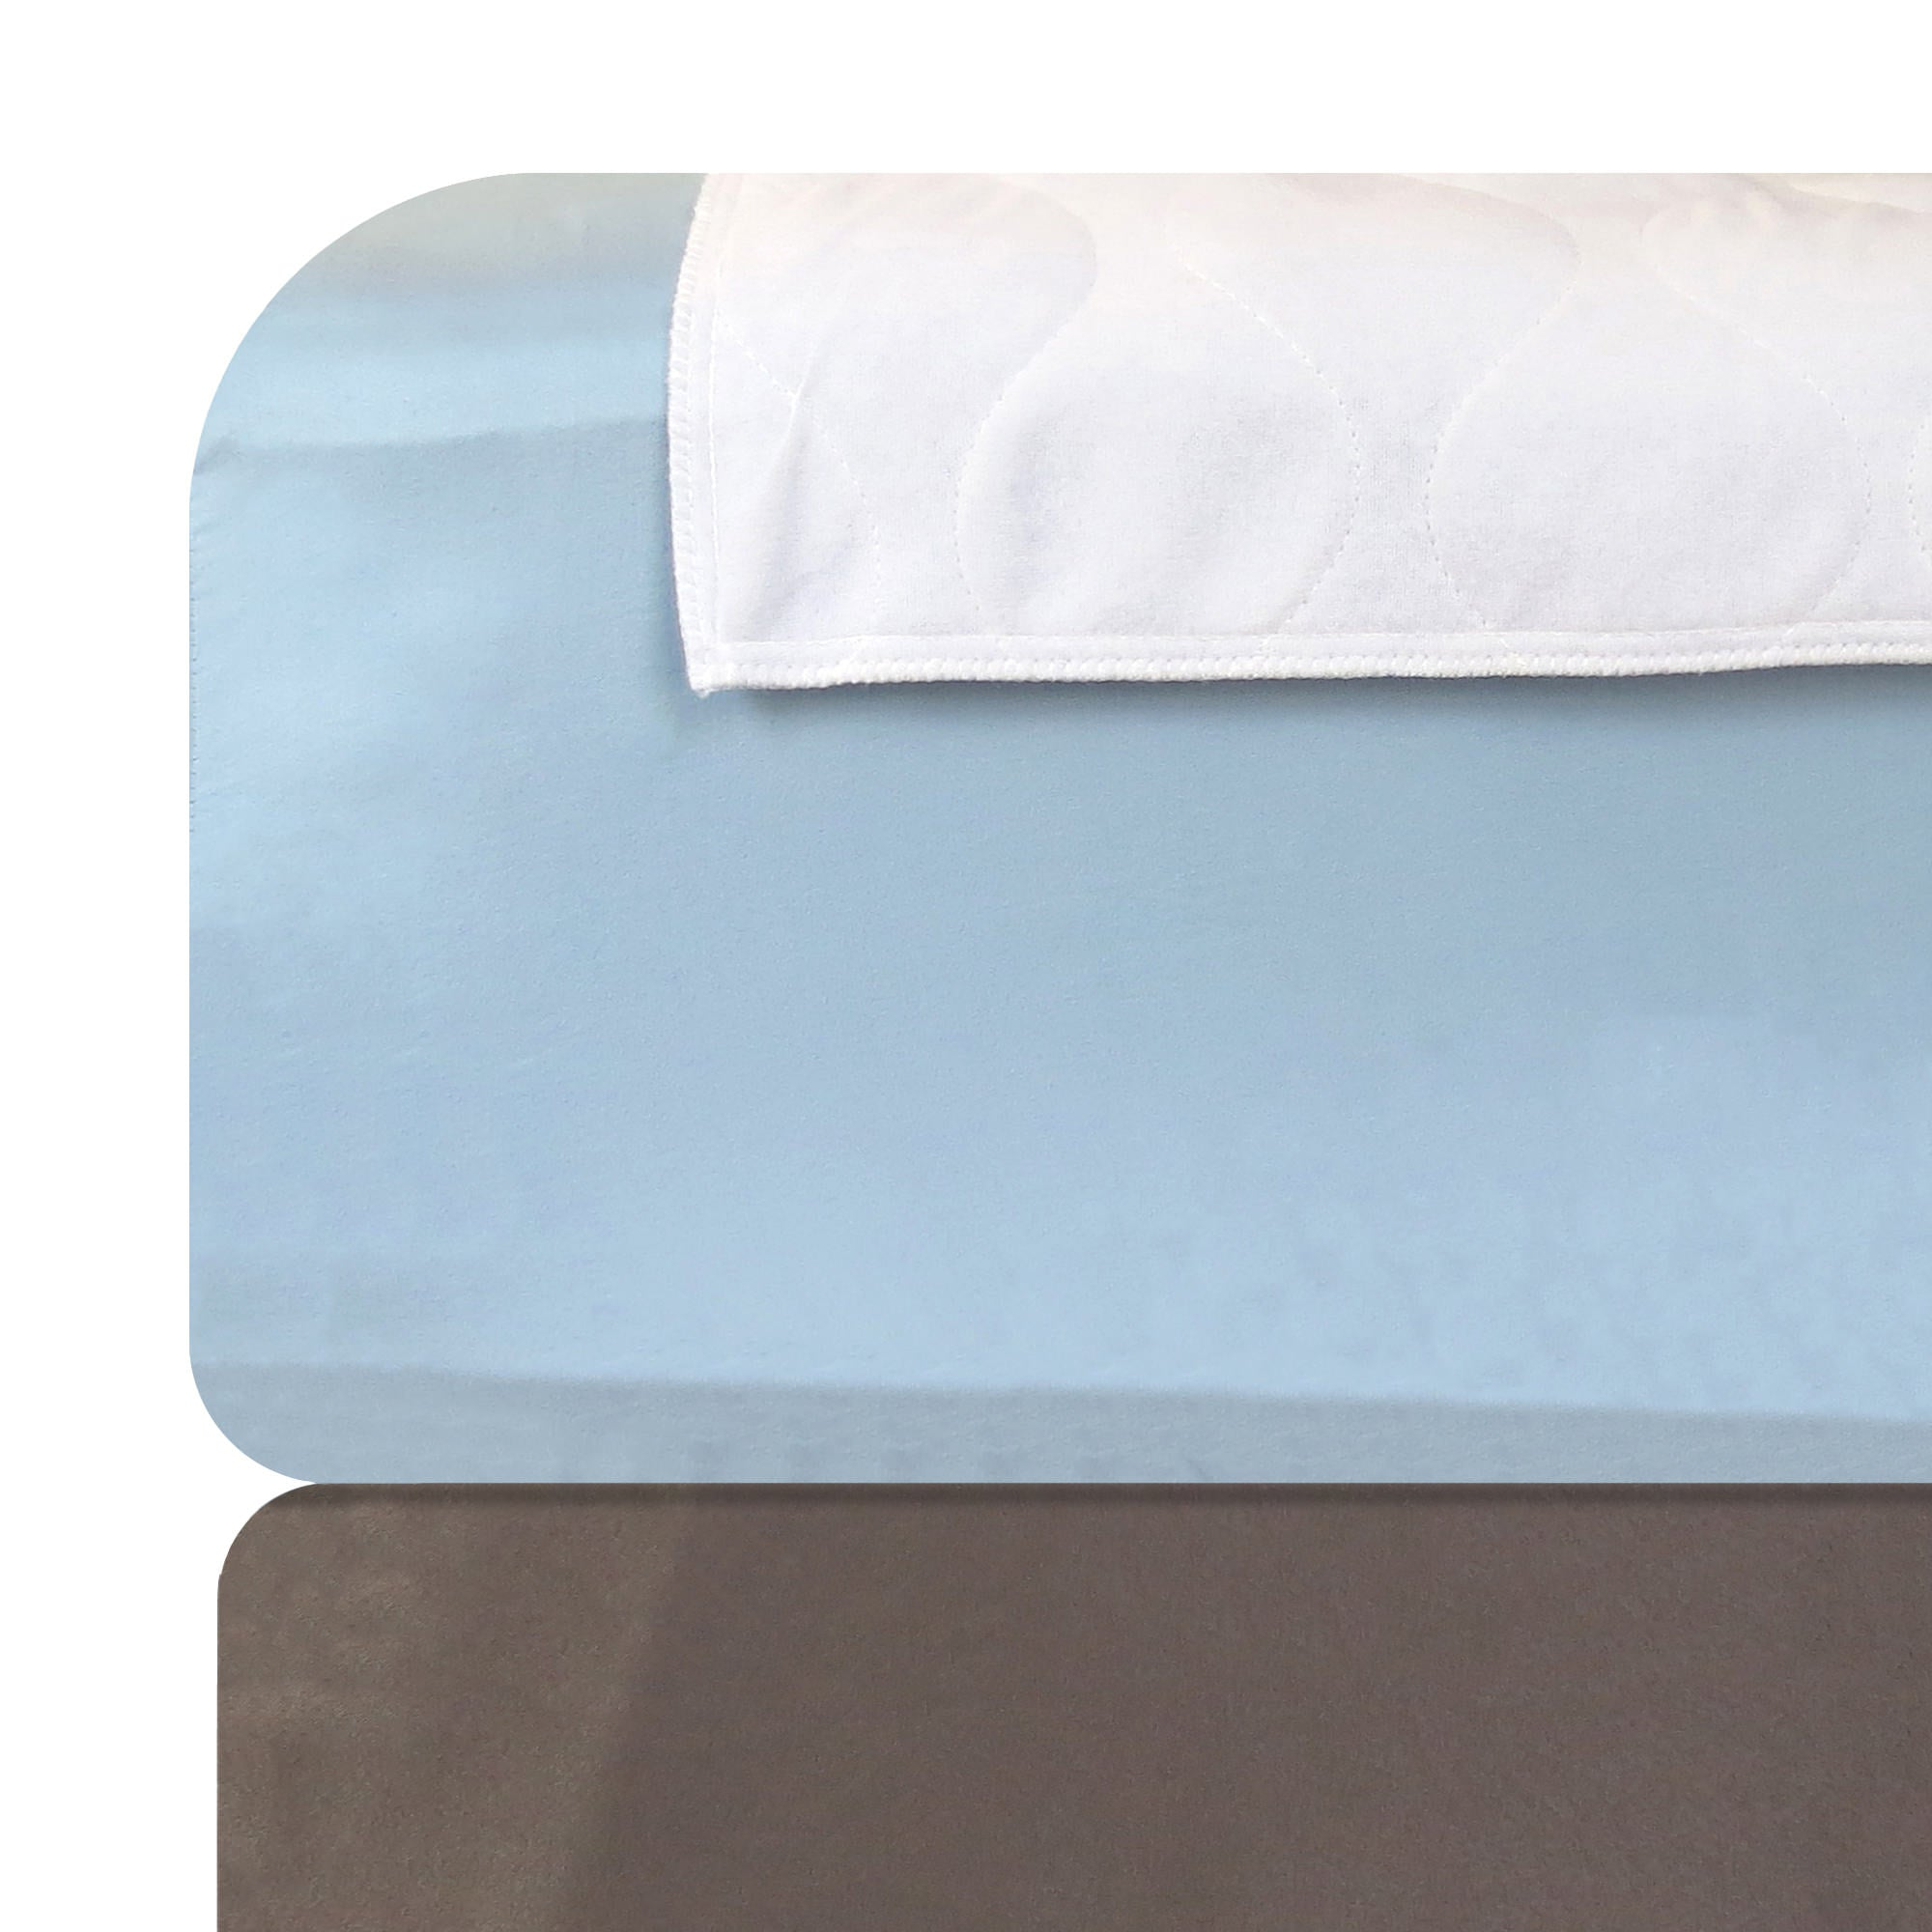 Bedding-Odor-Eliminating Underpad